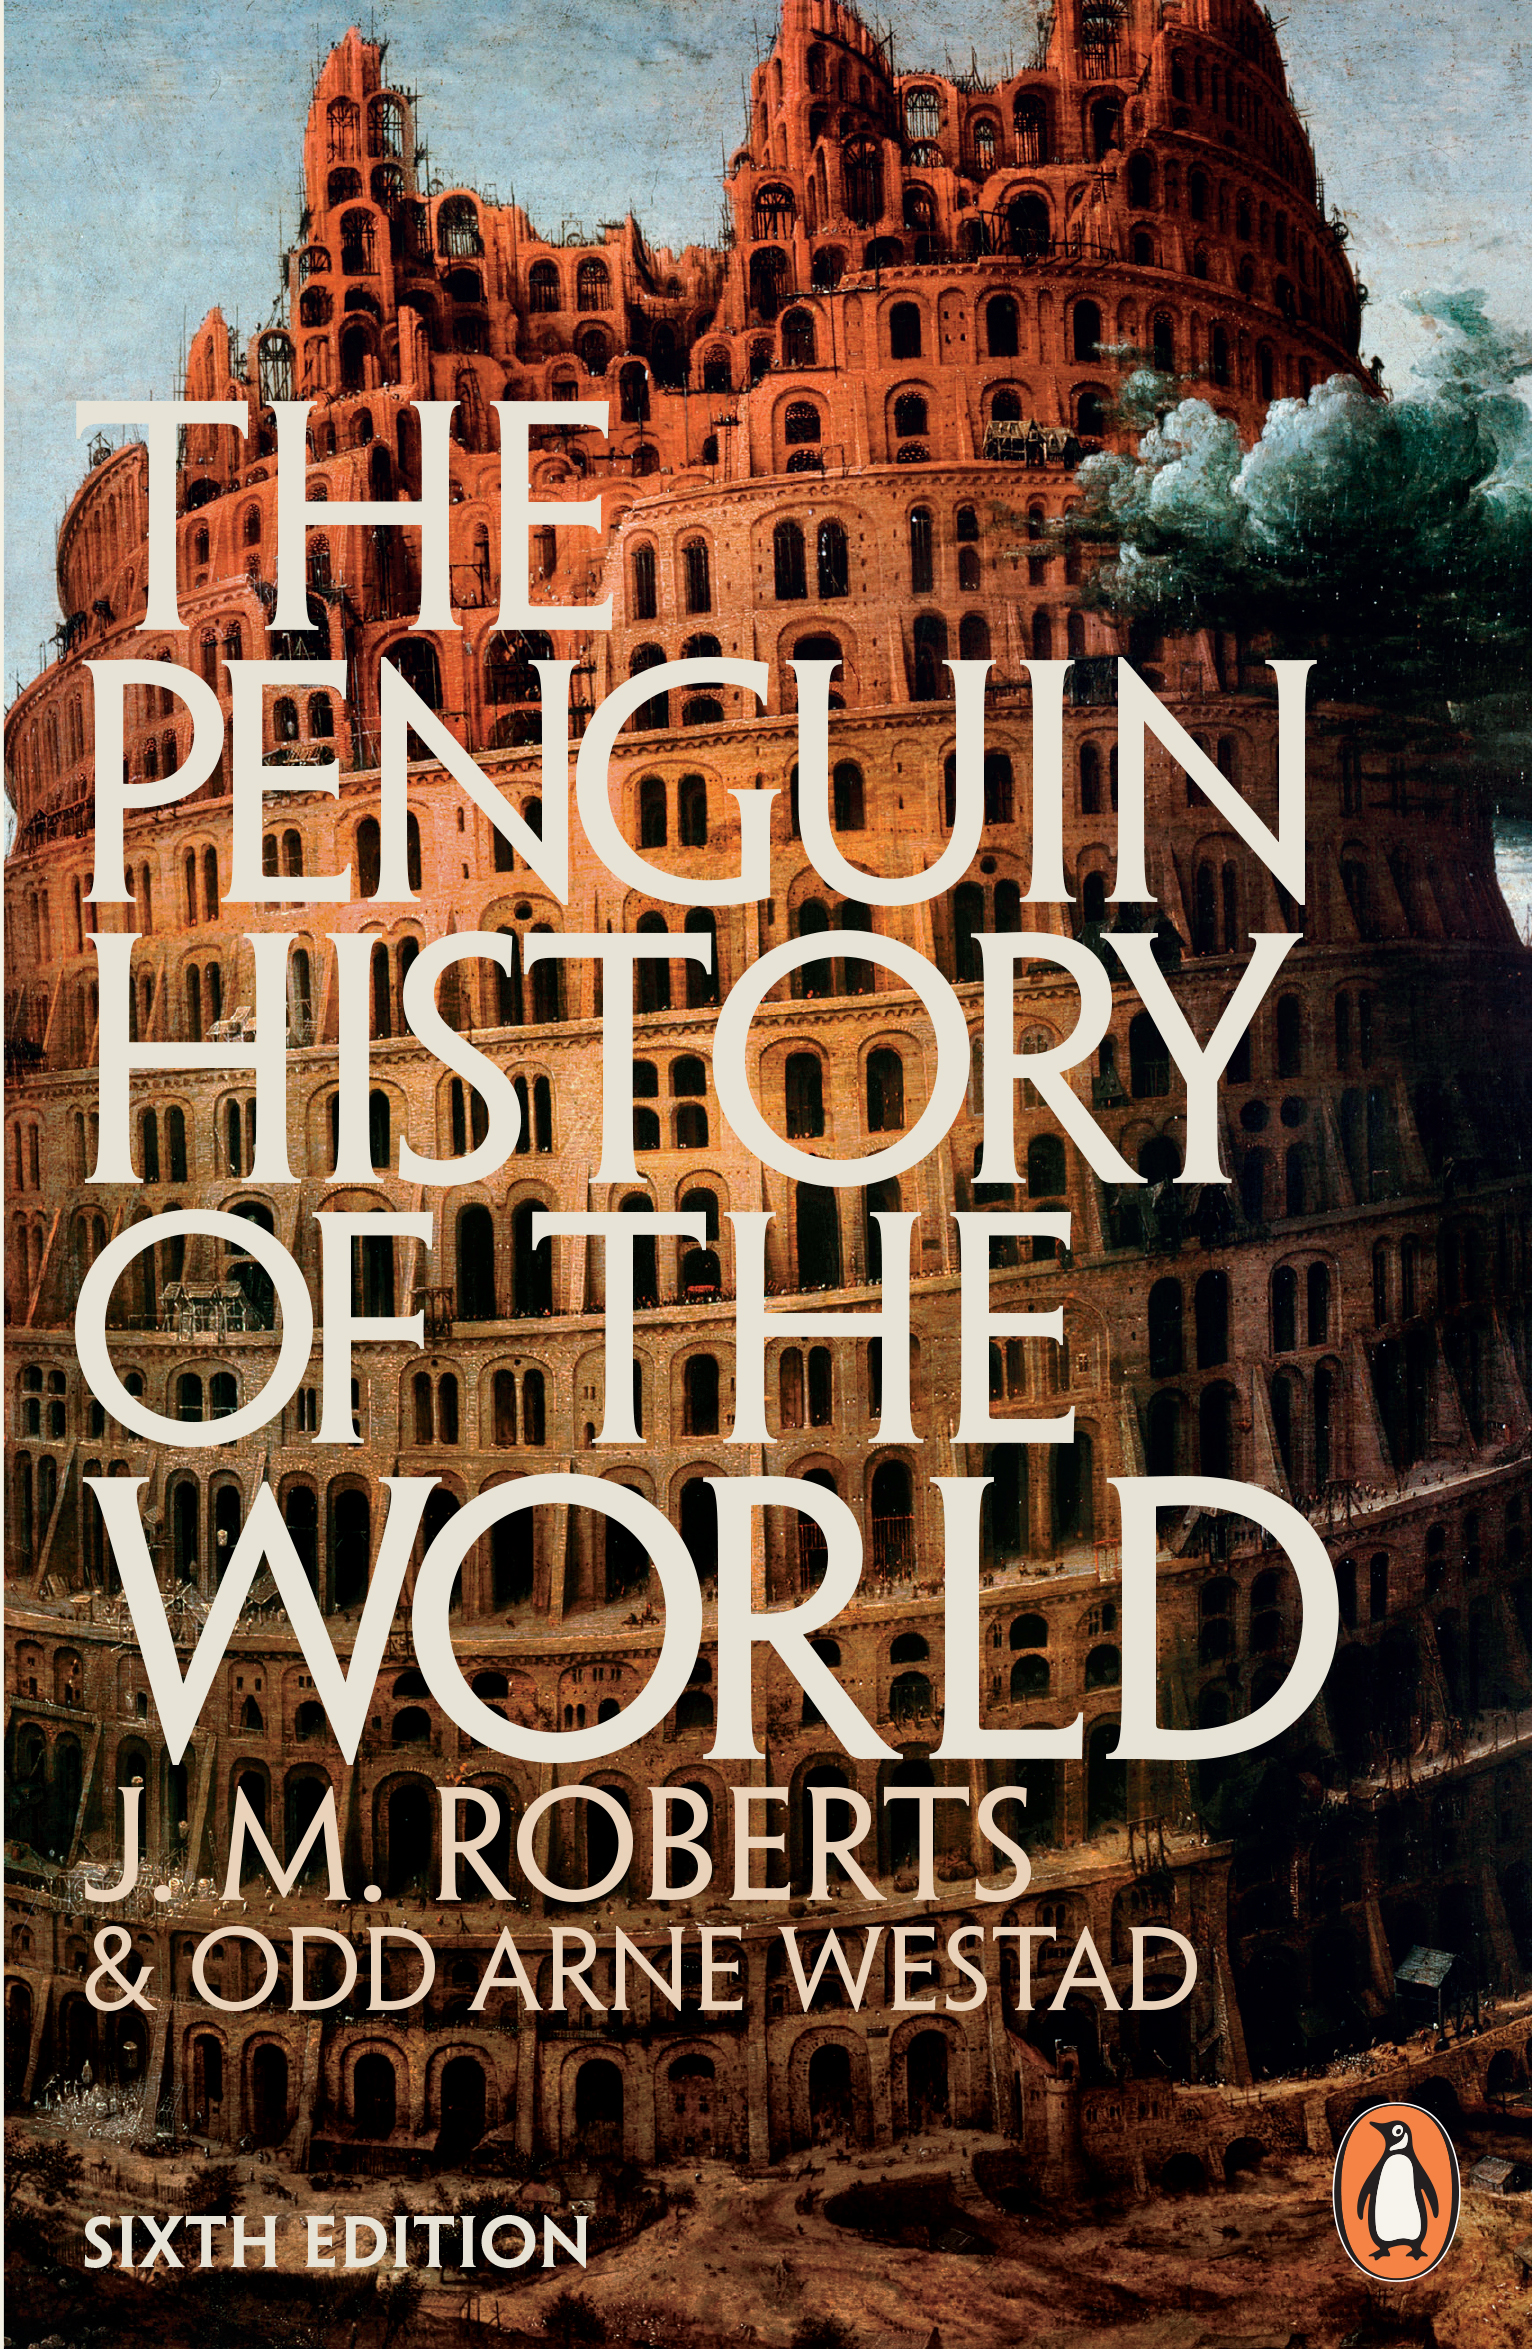 The Penguin History of the World by J. M. Roberts, ISBN: 9781846144431